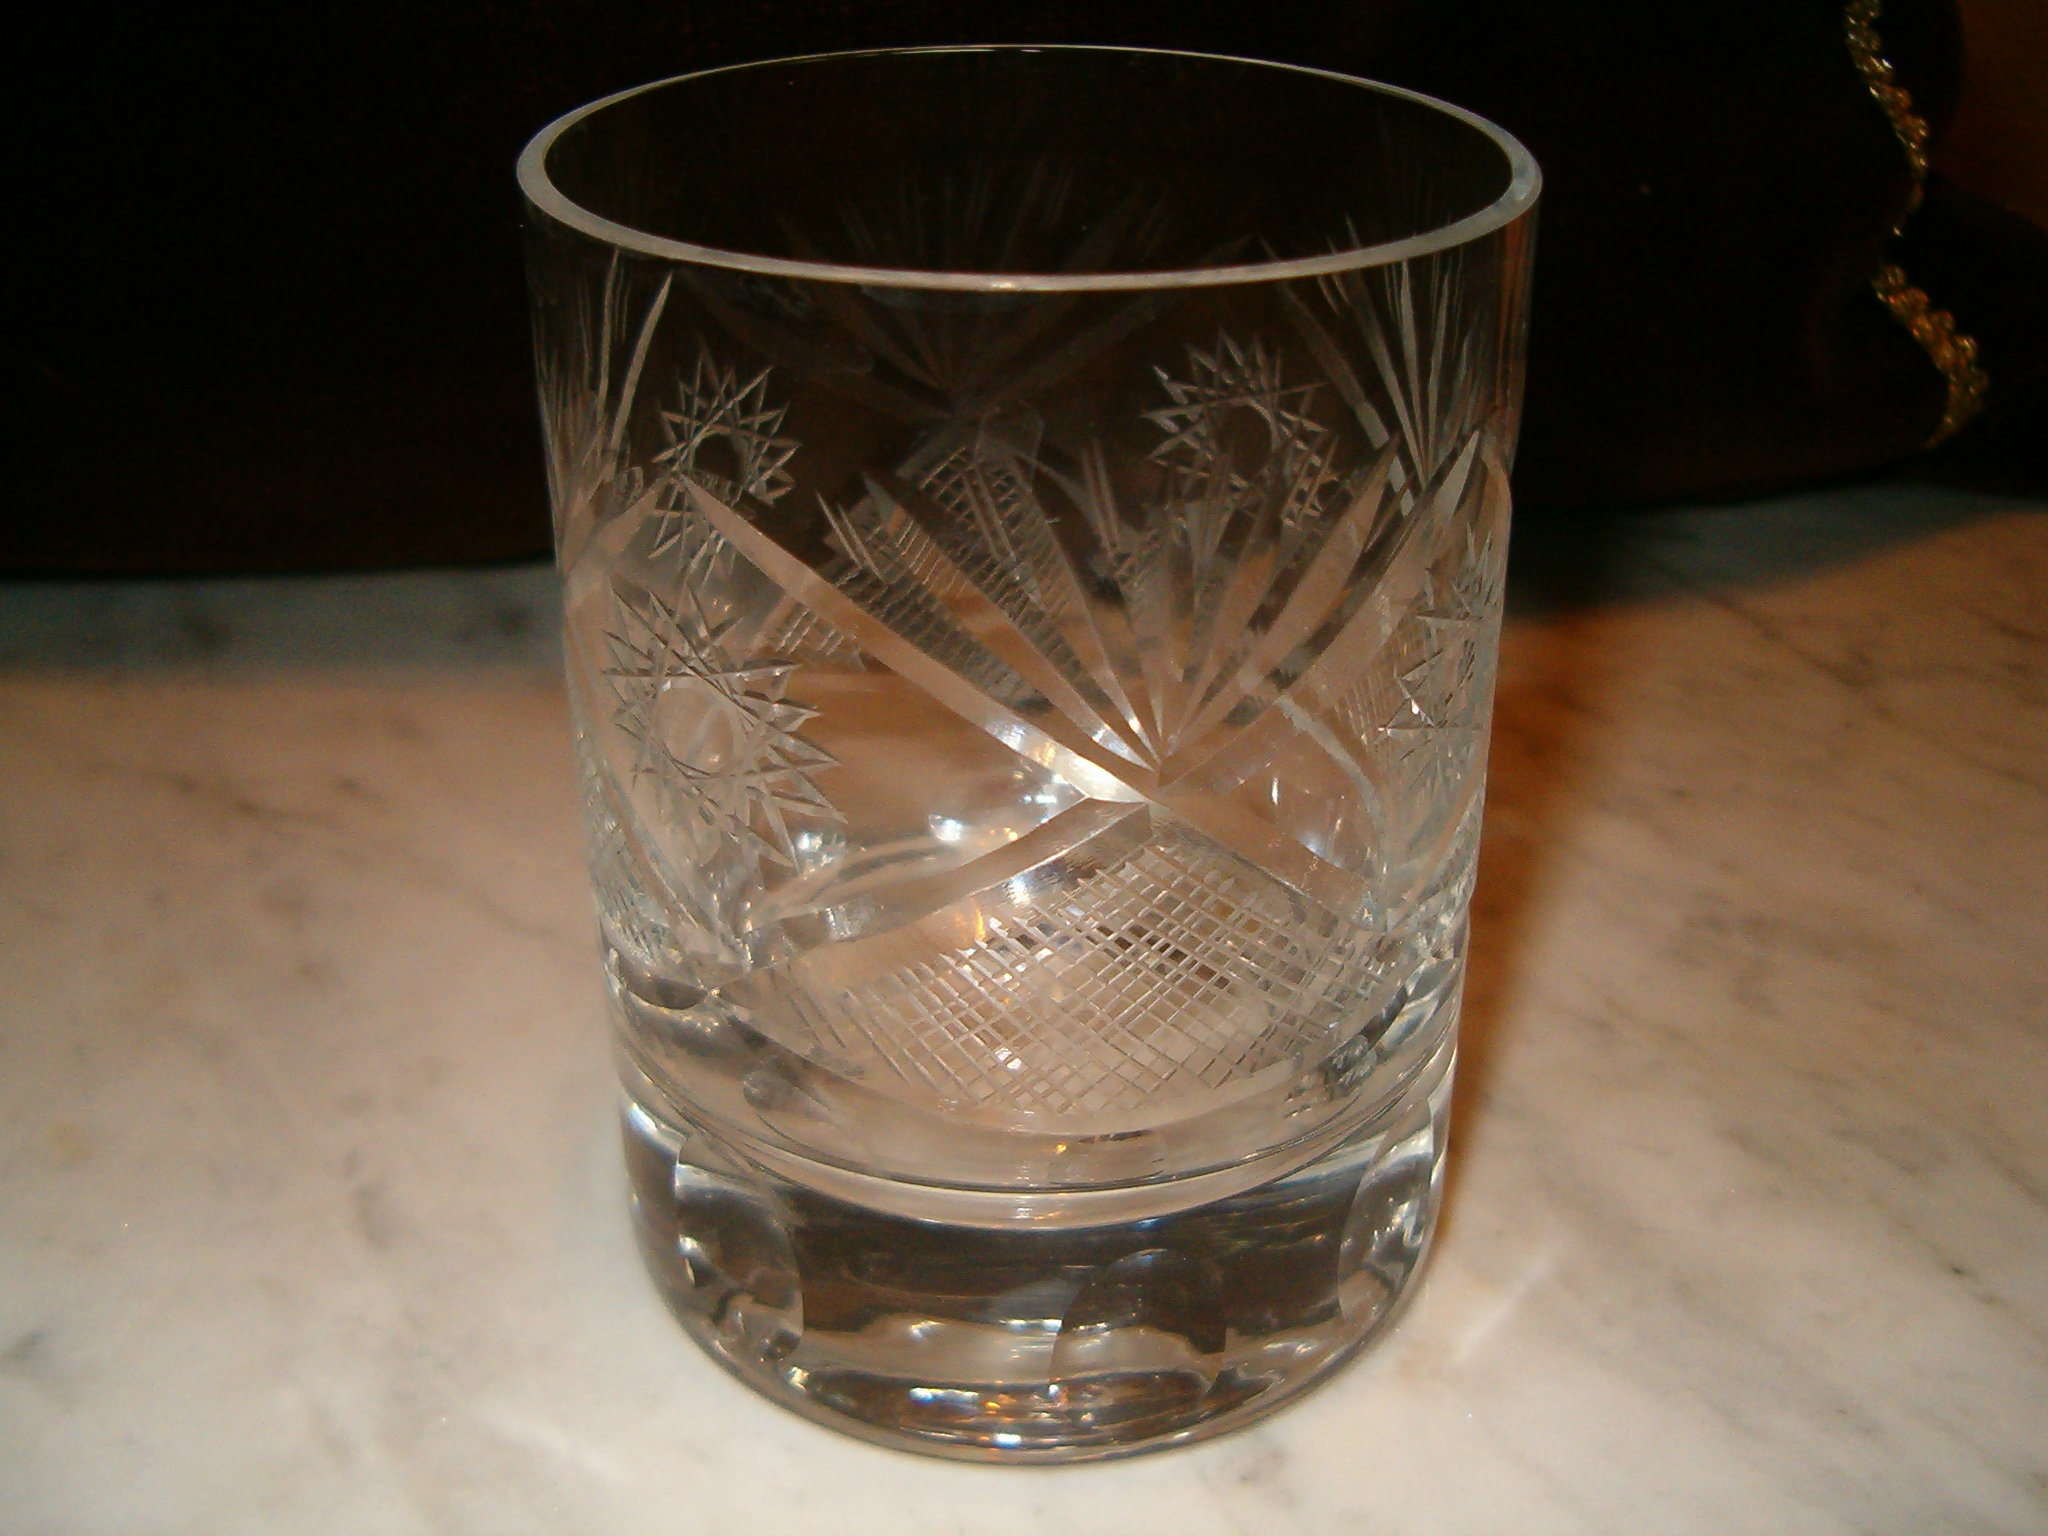 File:Old fashioned glass 2.jpg - Wikipedia, the free encyclopedia